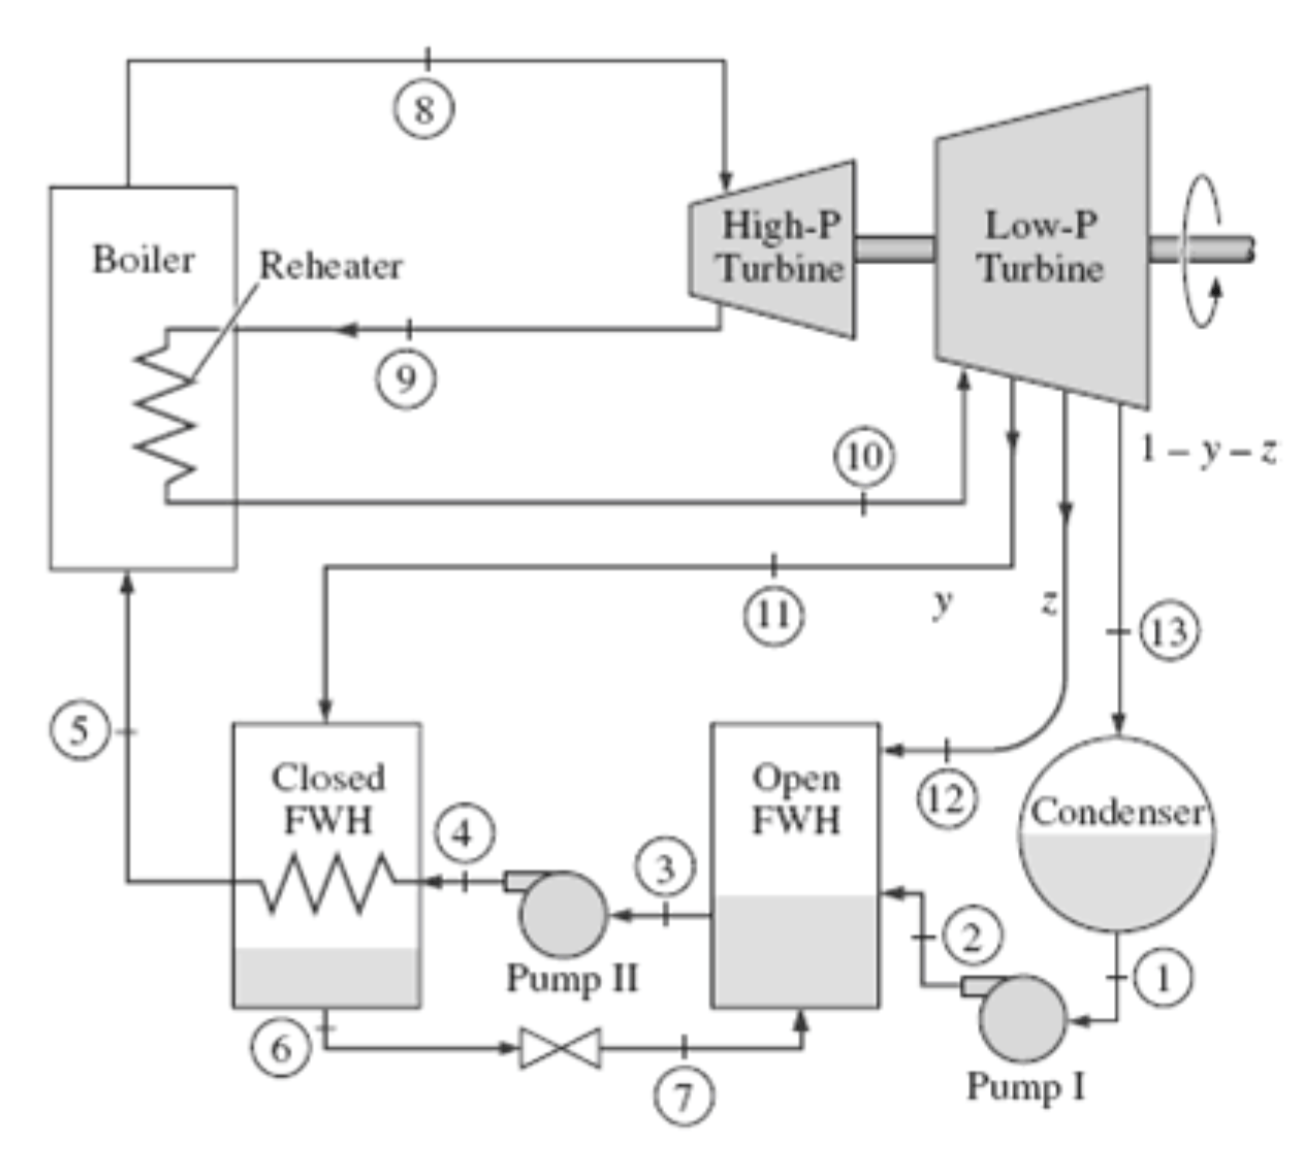 Telecom Power Plant Diagram